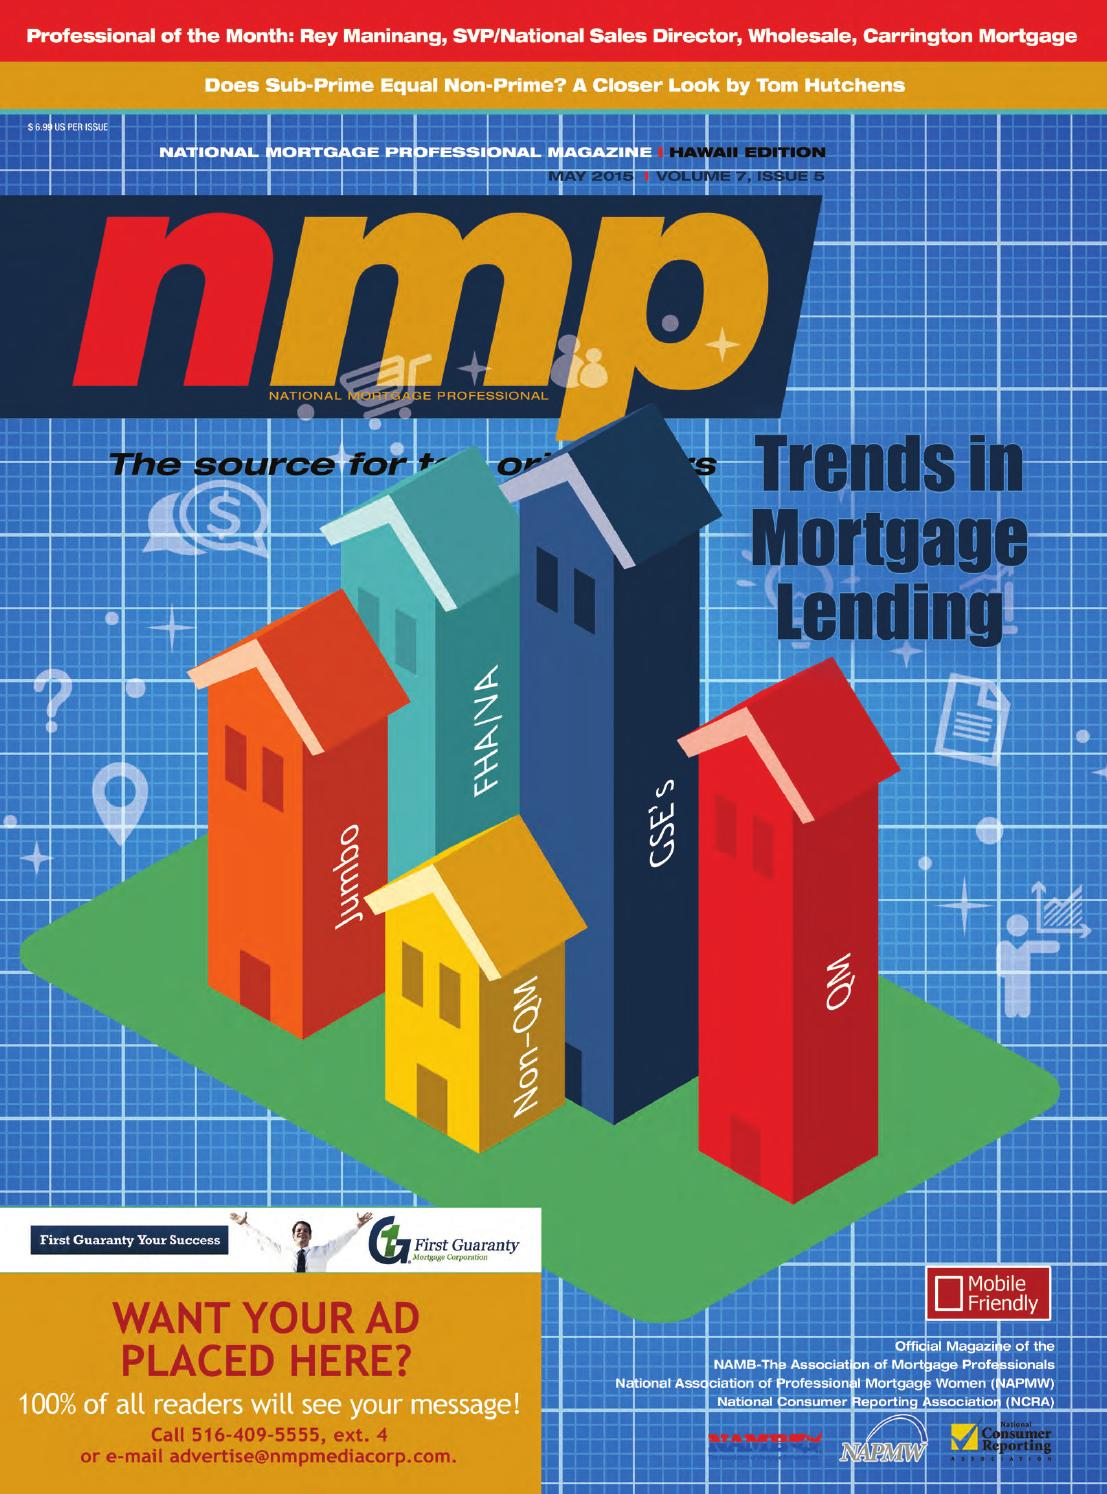 Hawaii Mortgage Professional Magazine May 2015 by NMP Media